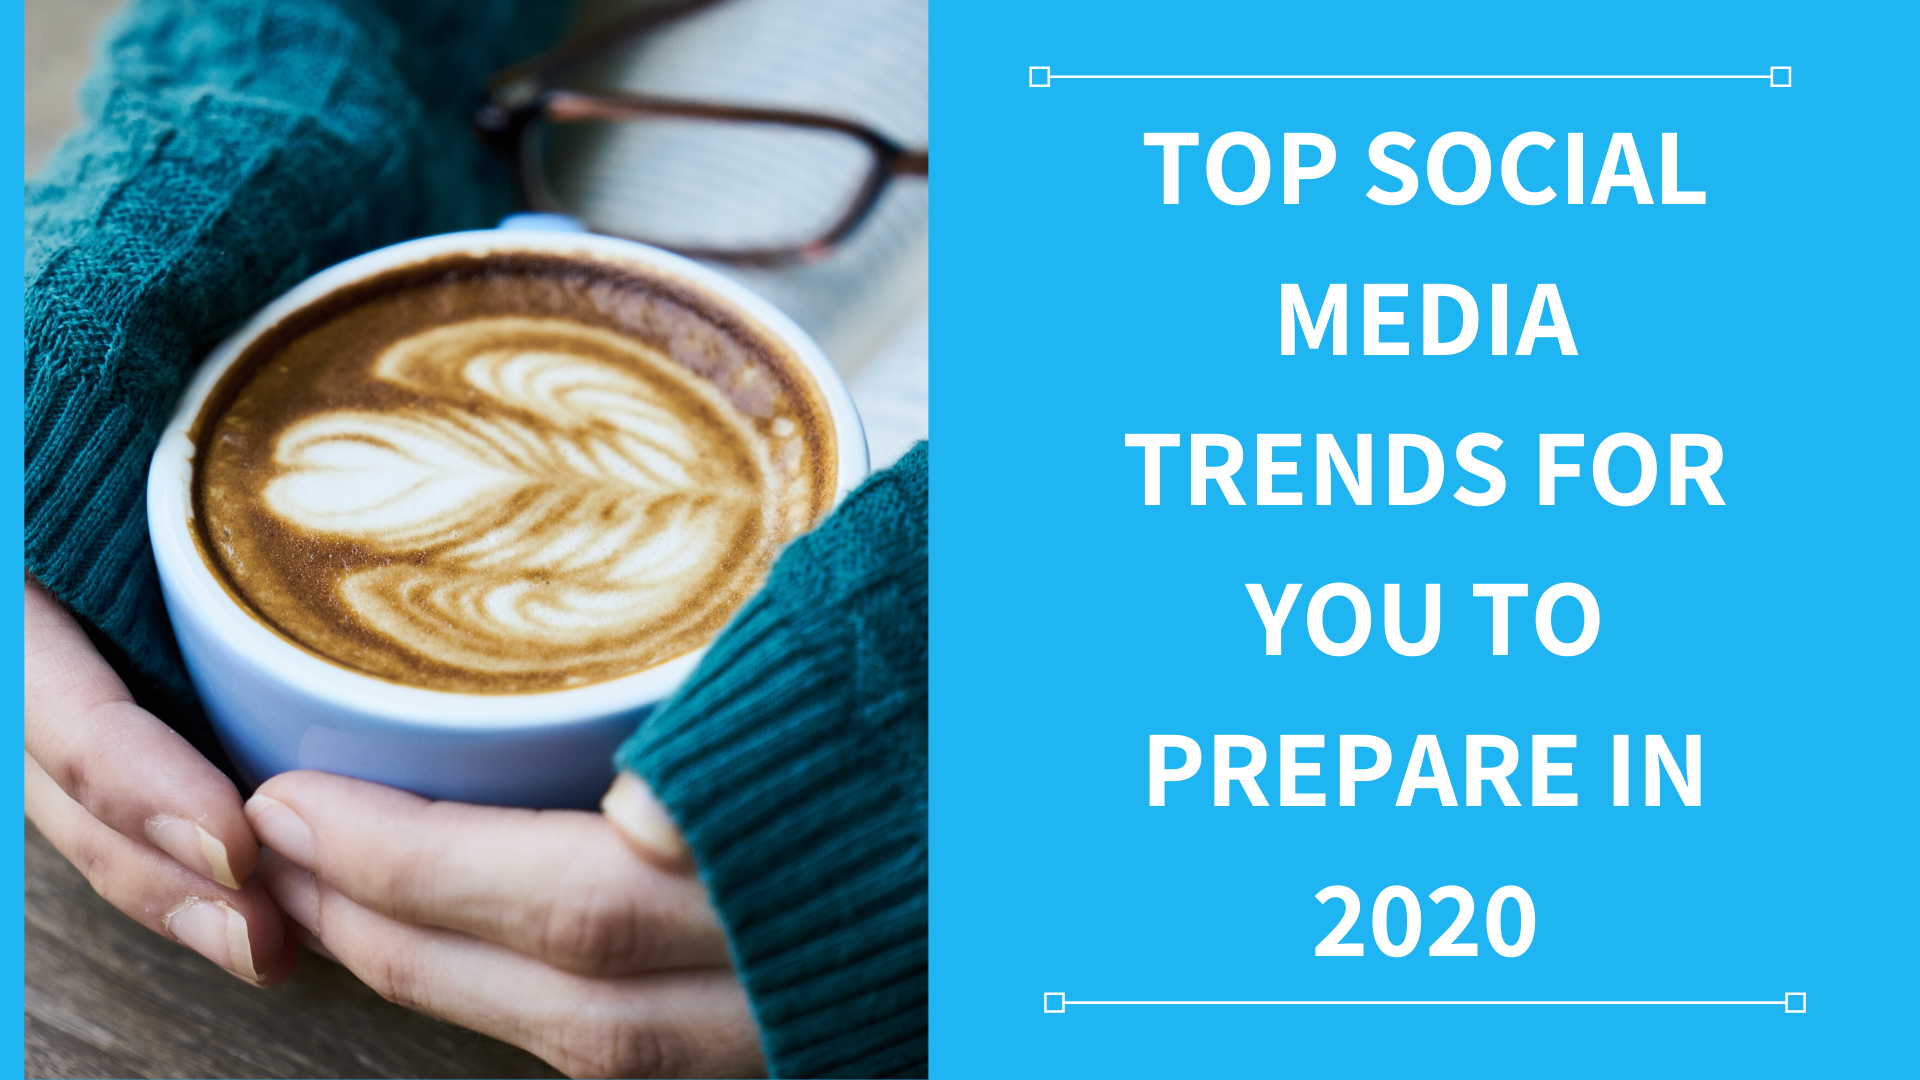 Coffee Trends 2020.Top Social Media Trends For You To Prepare In 2020